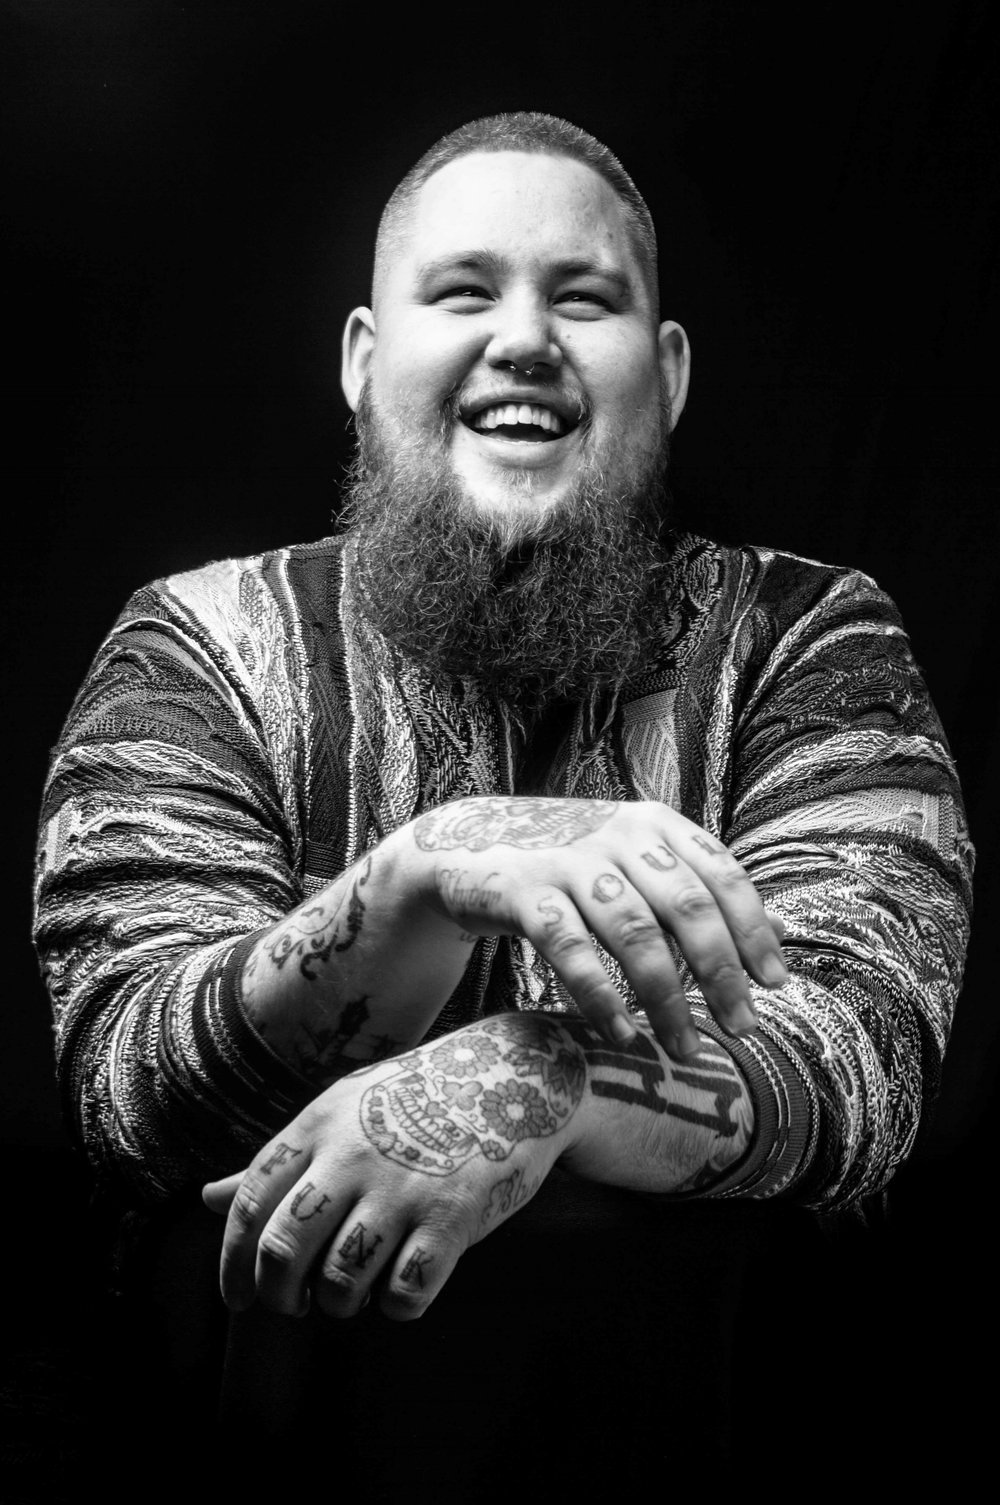 // Rag'n'Bone Man